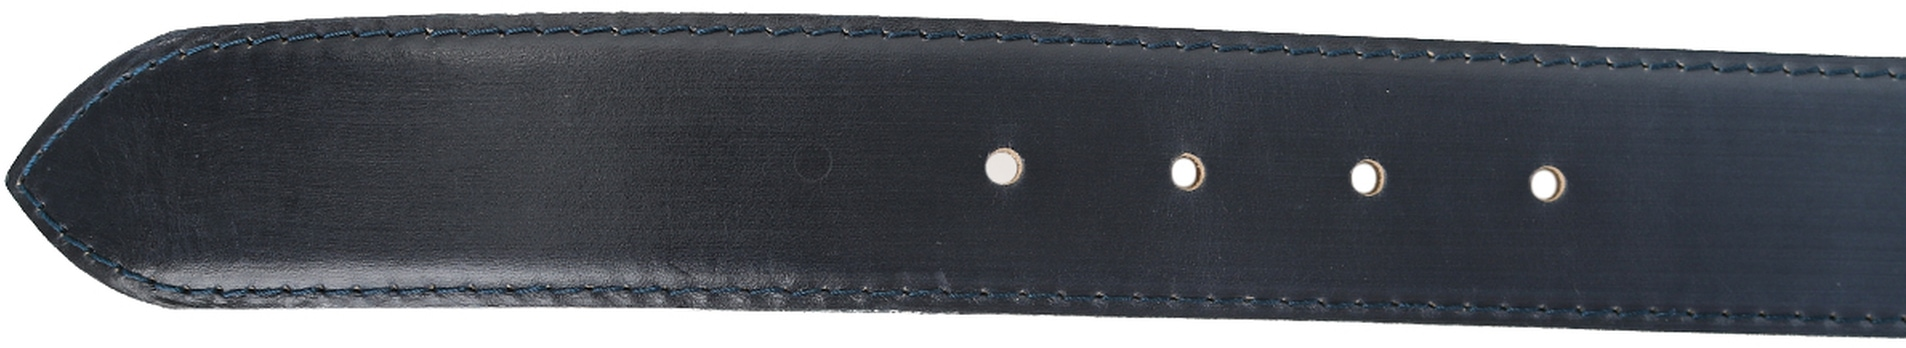 Giorgio Belt Bellaria Navy Leather foto 1